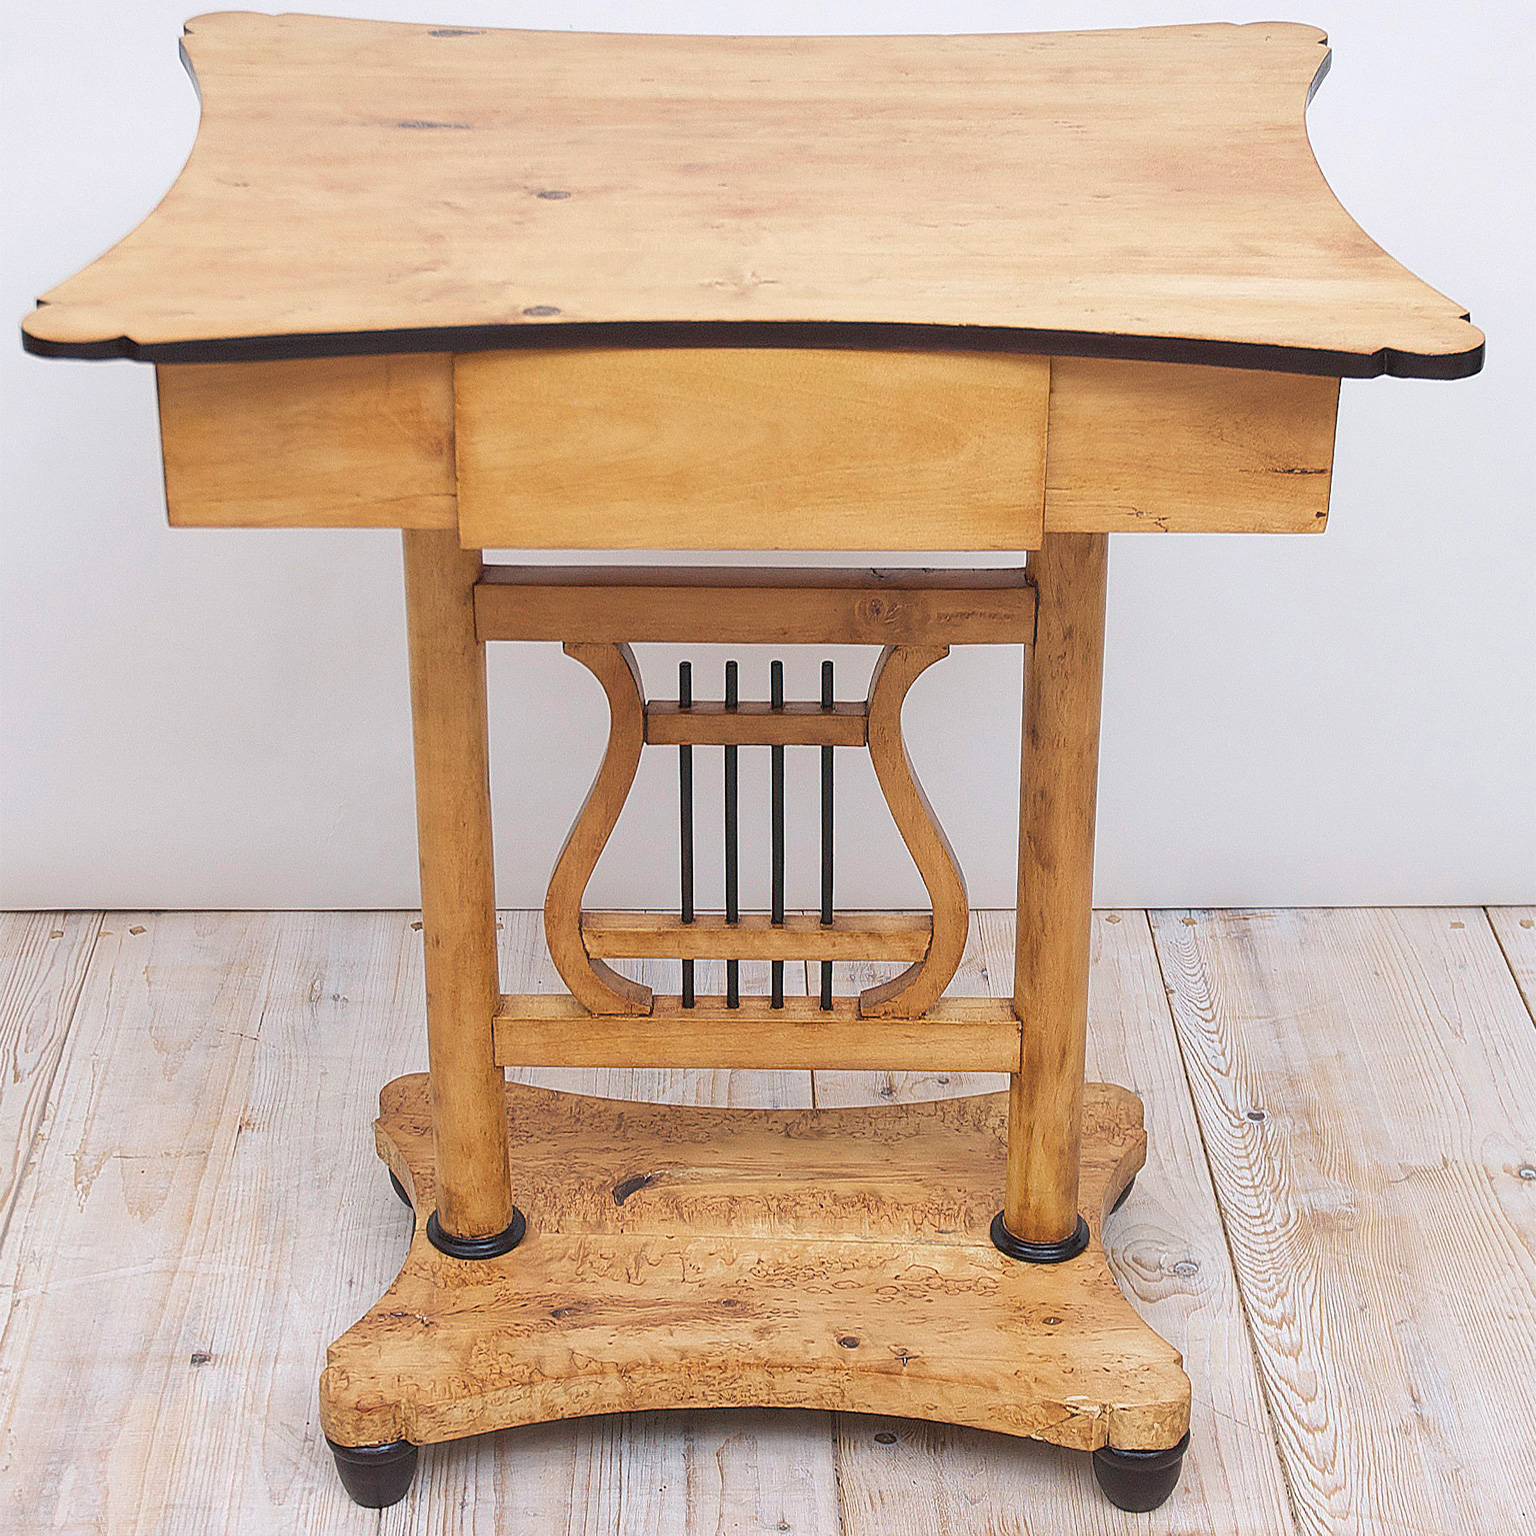 Biedermeier Birch Table With Lyre Pedestal And One Drawer